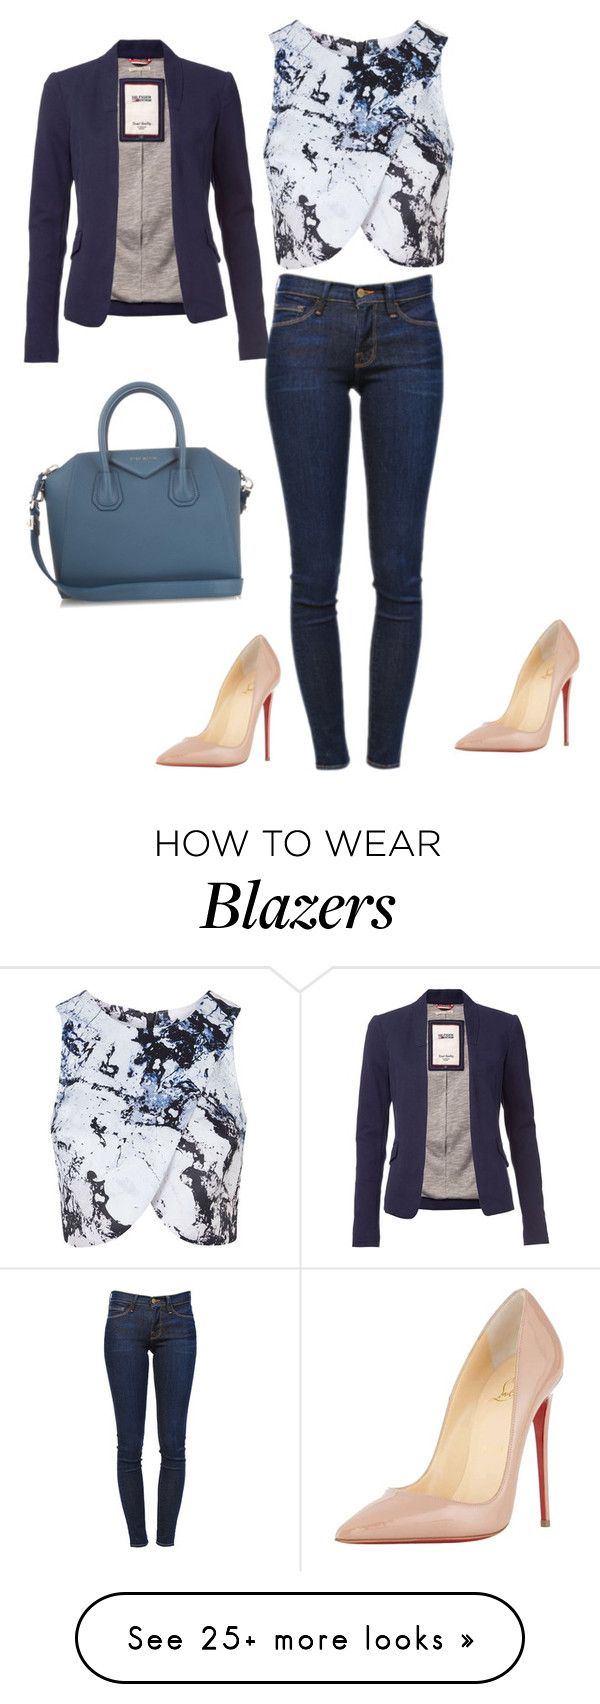 """""""Untitled #535"""" by martinmel-mlm on Polyvore featuring Topshop, Tommy Hilfiger, Frame Denim, Christian Louboutin, Givenchy, women's clothing, women, female, woman and misses"""